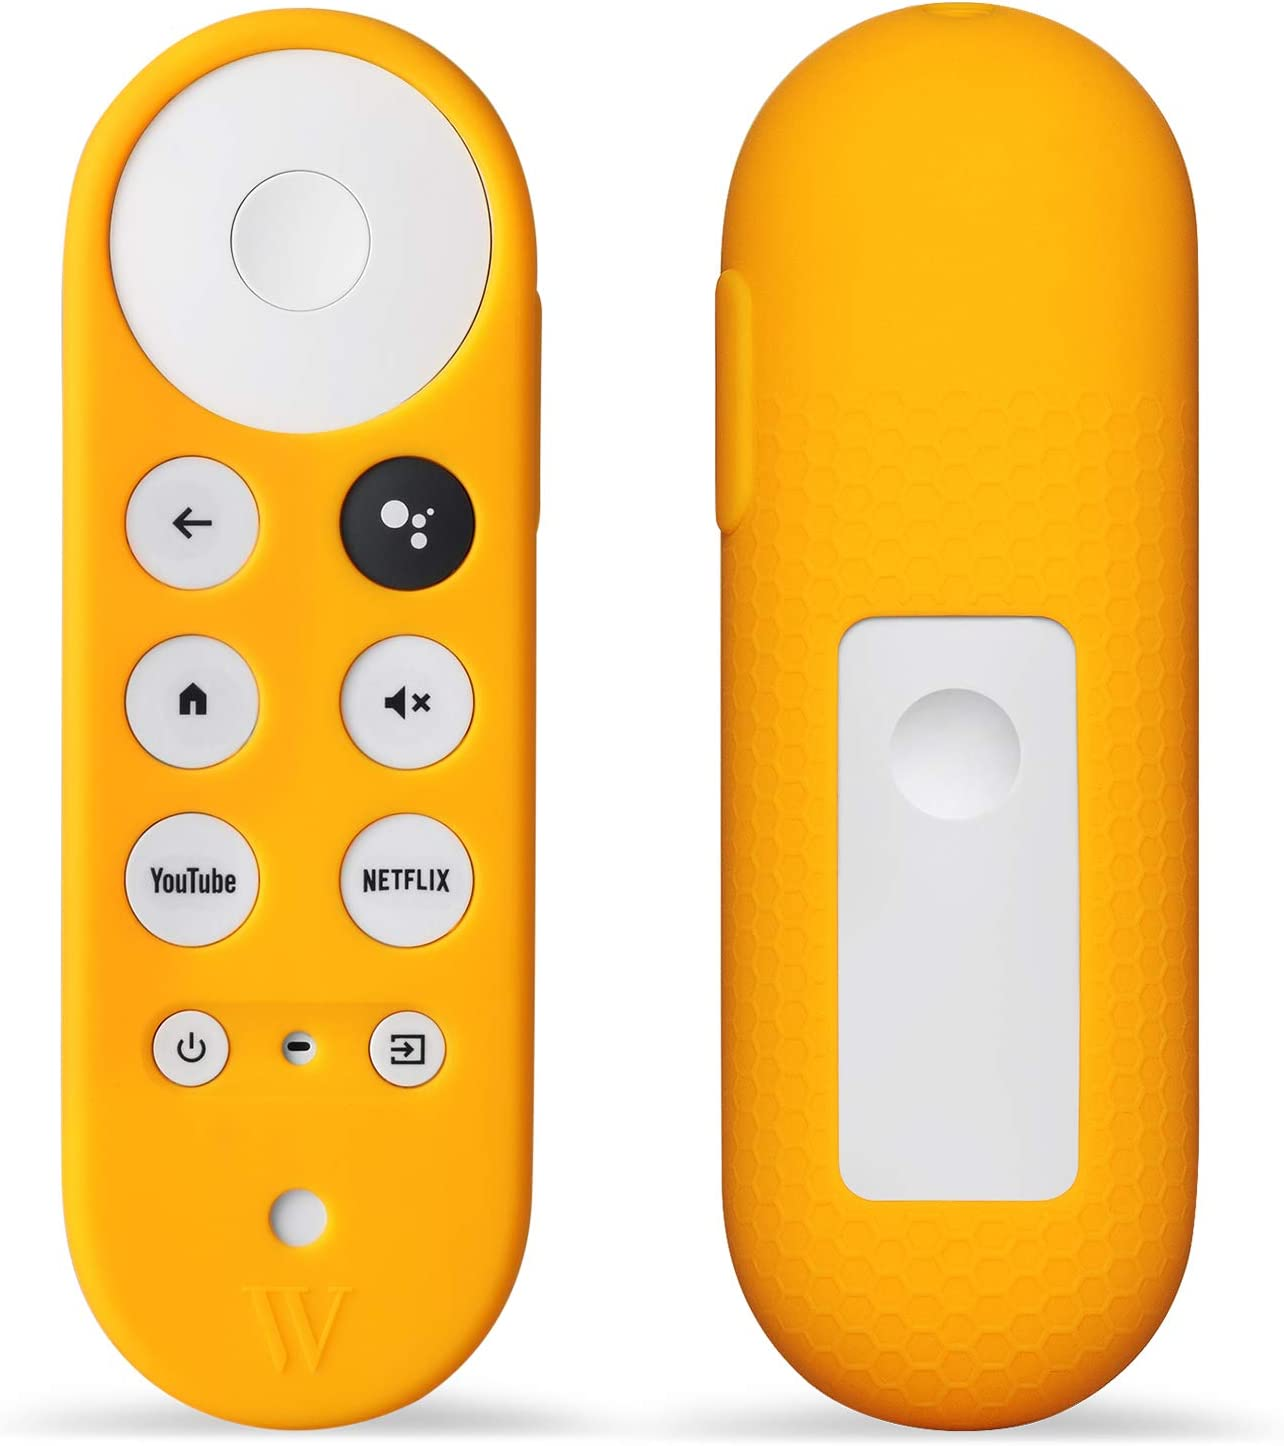 Wasserstein Silicone Skin Compatible with Chromecast with Google TV Remote Control - Protective Cover for Your Remote Control (Yellow)